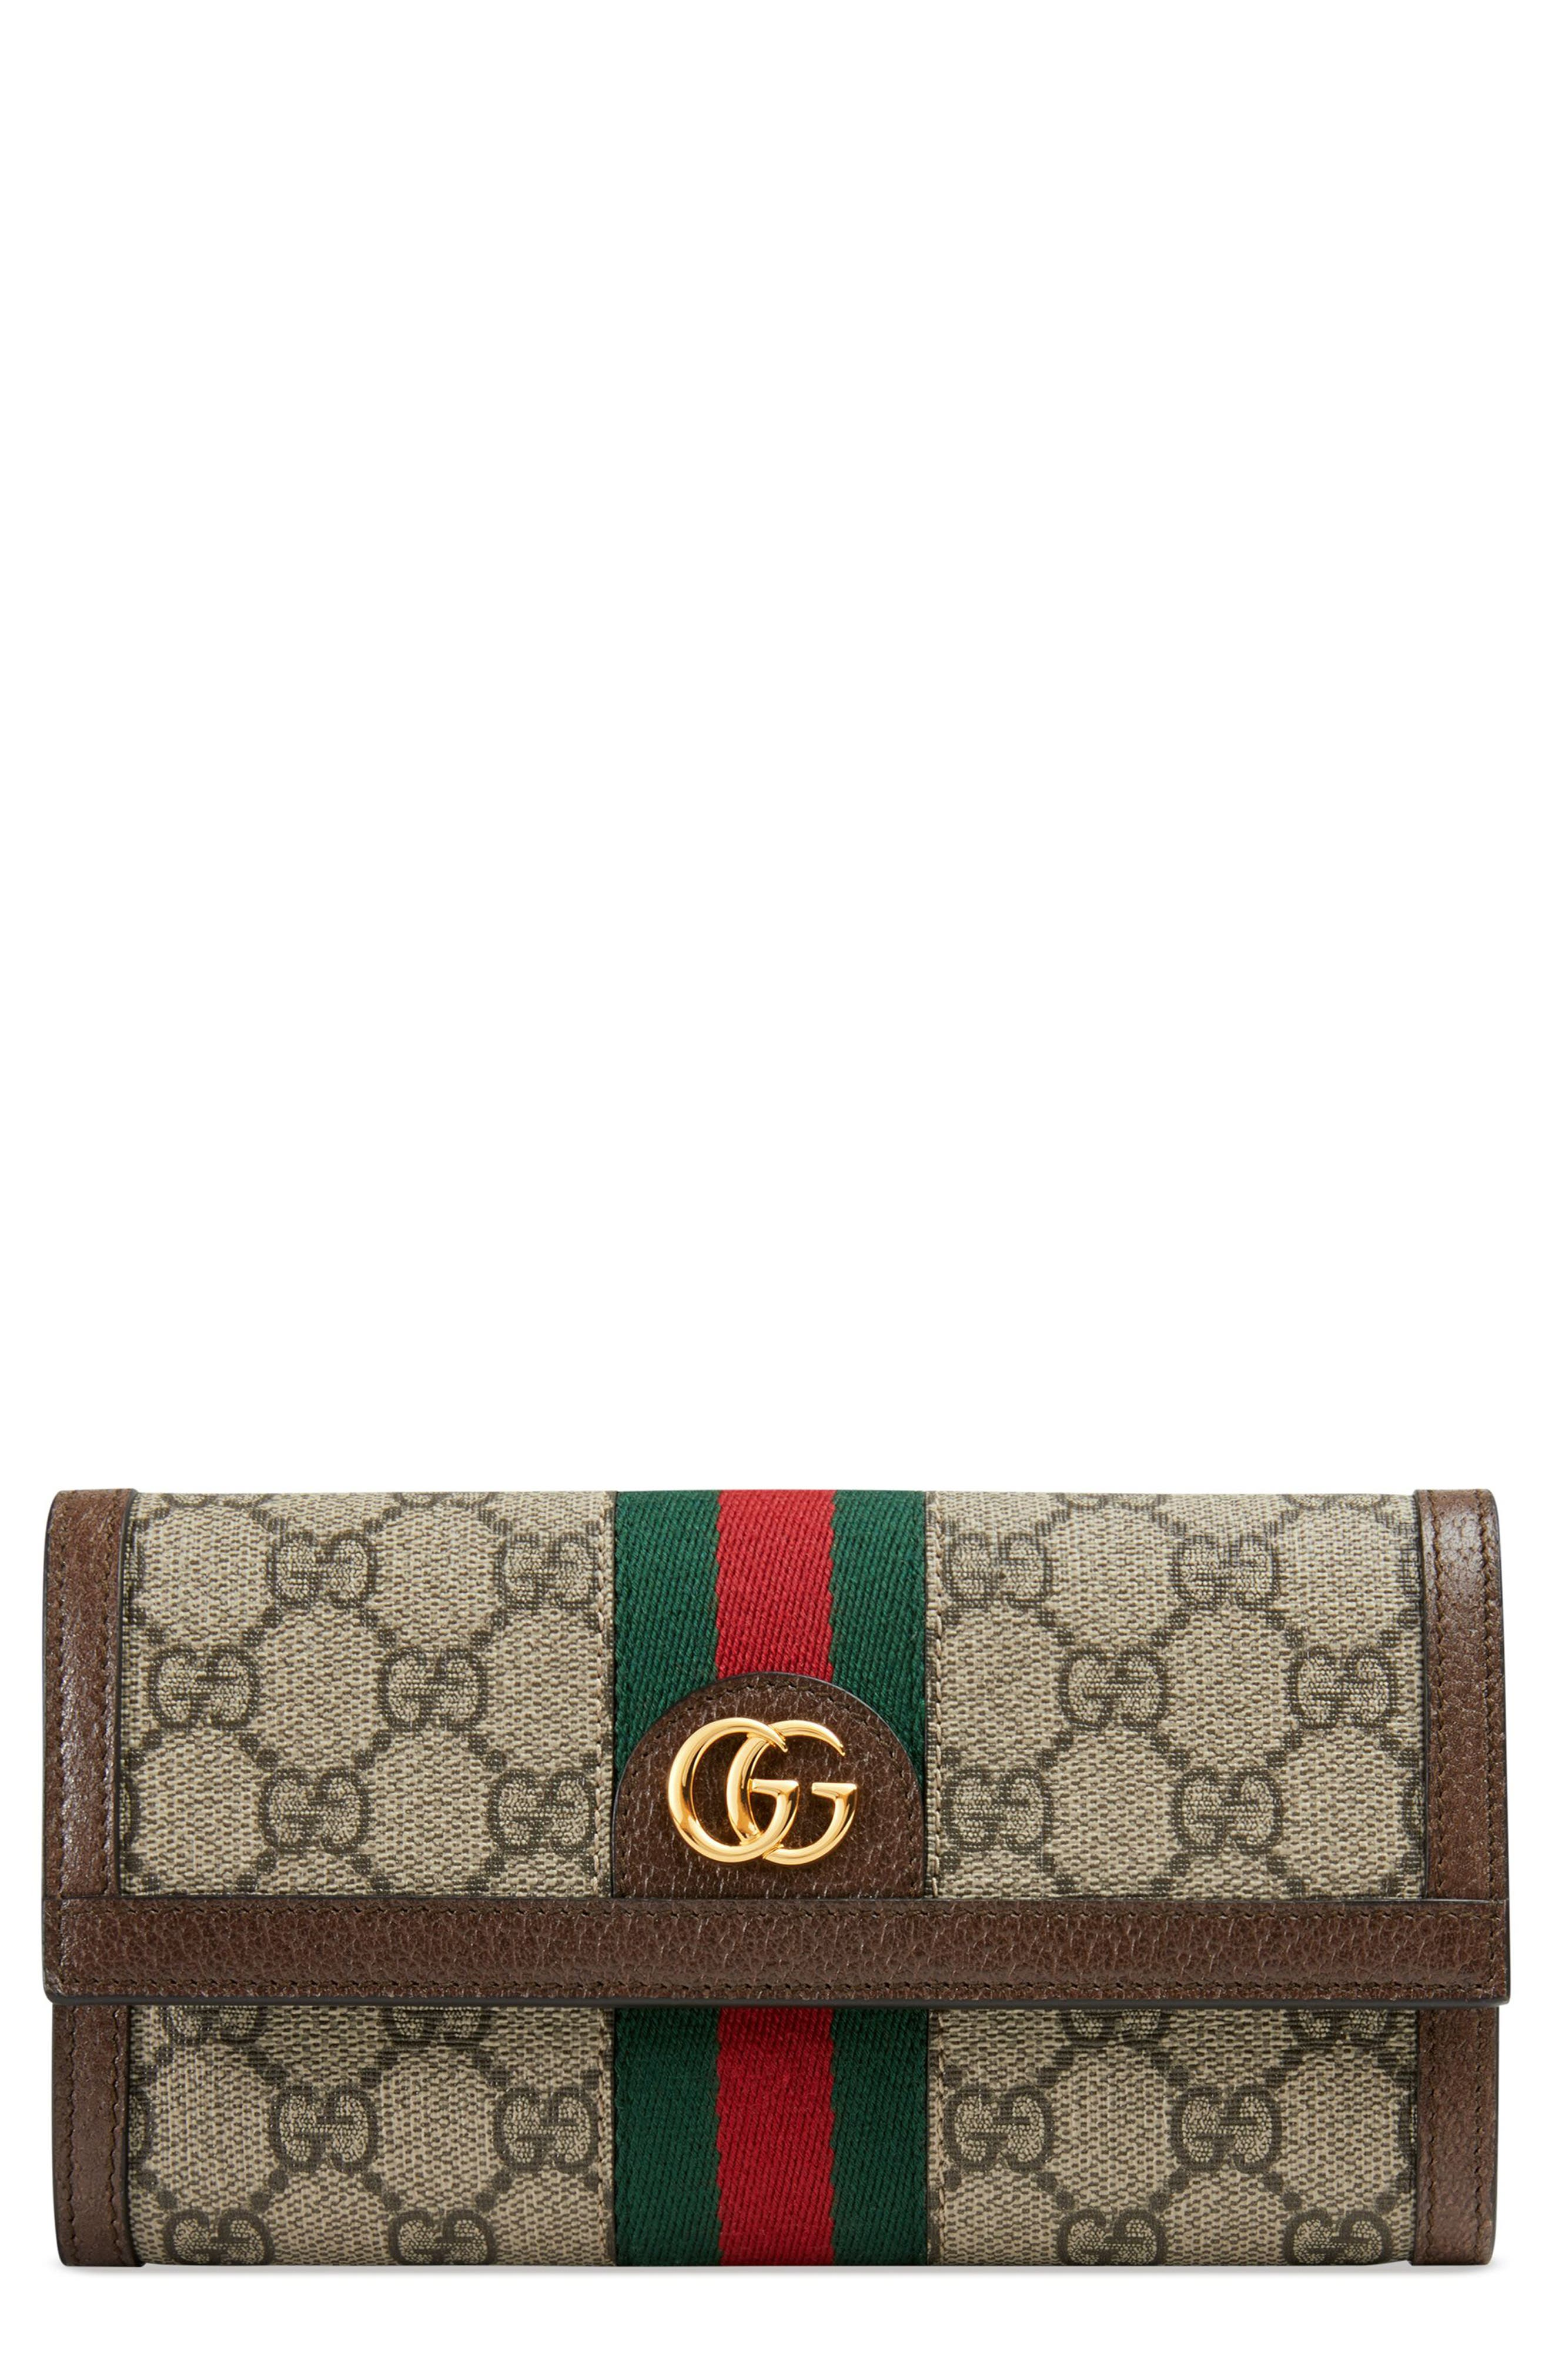 Ophidia GG Supreme Continental Wallet,                         Main,                         color, Beige Ebony/ Acero/ Vert Red